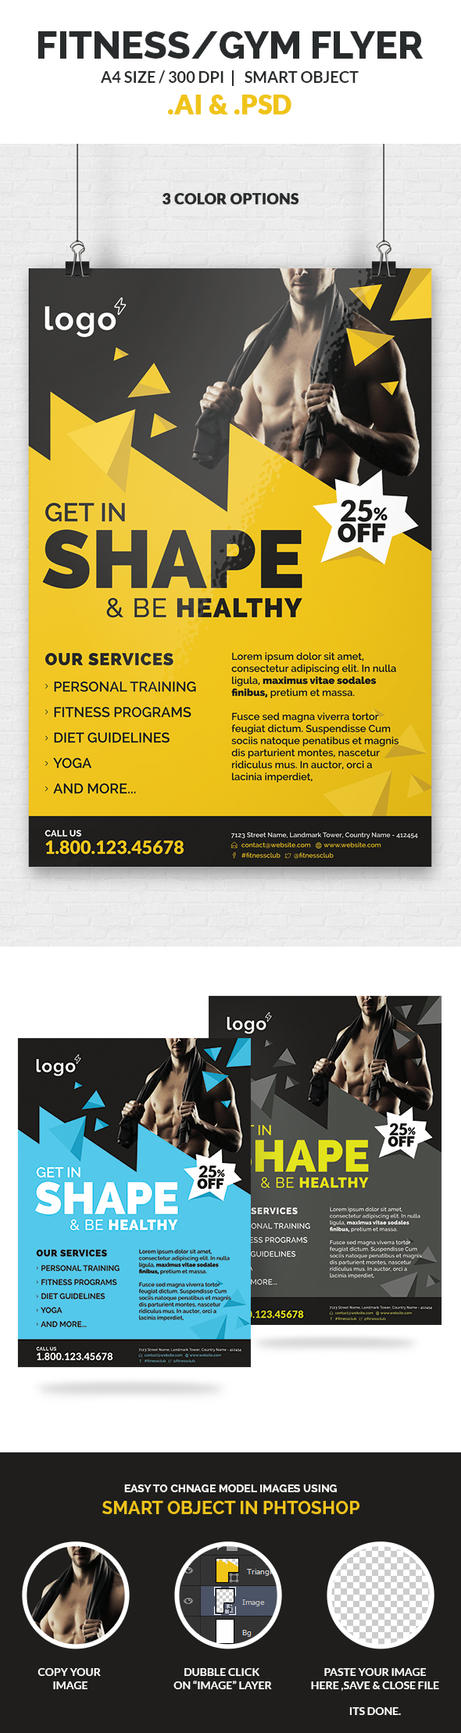 fitness gym flyer template by webduckdesign on deviantart. Black Bedroom Furniture Sets. Home Design Ideas